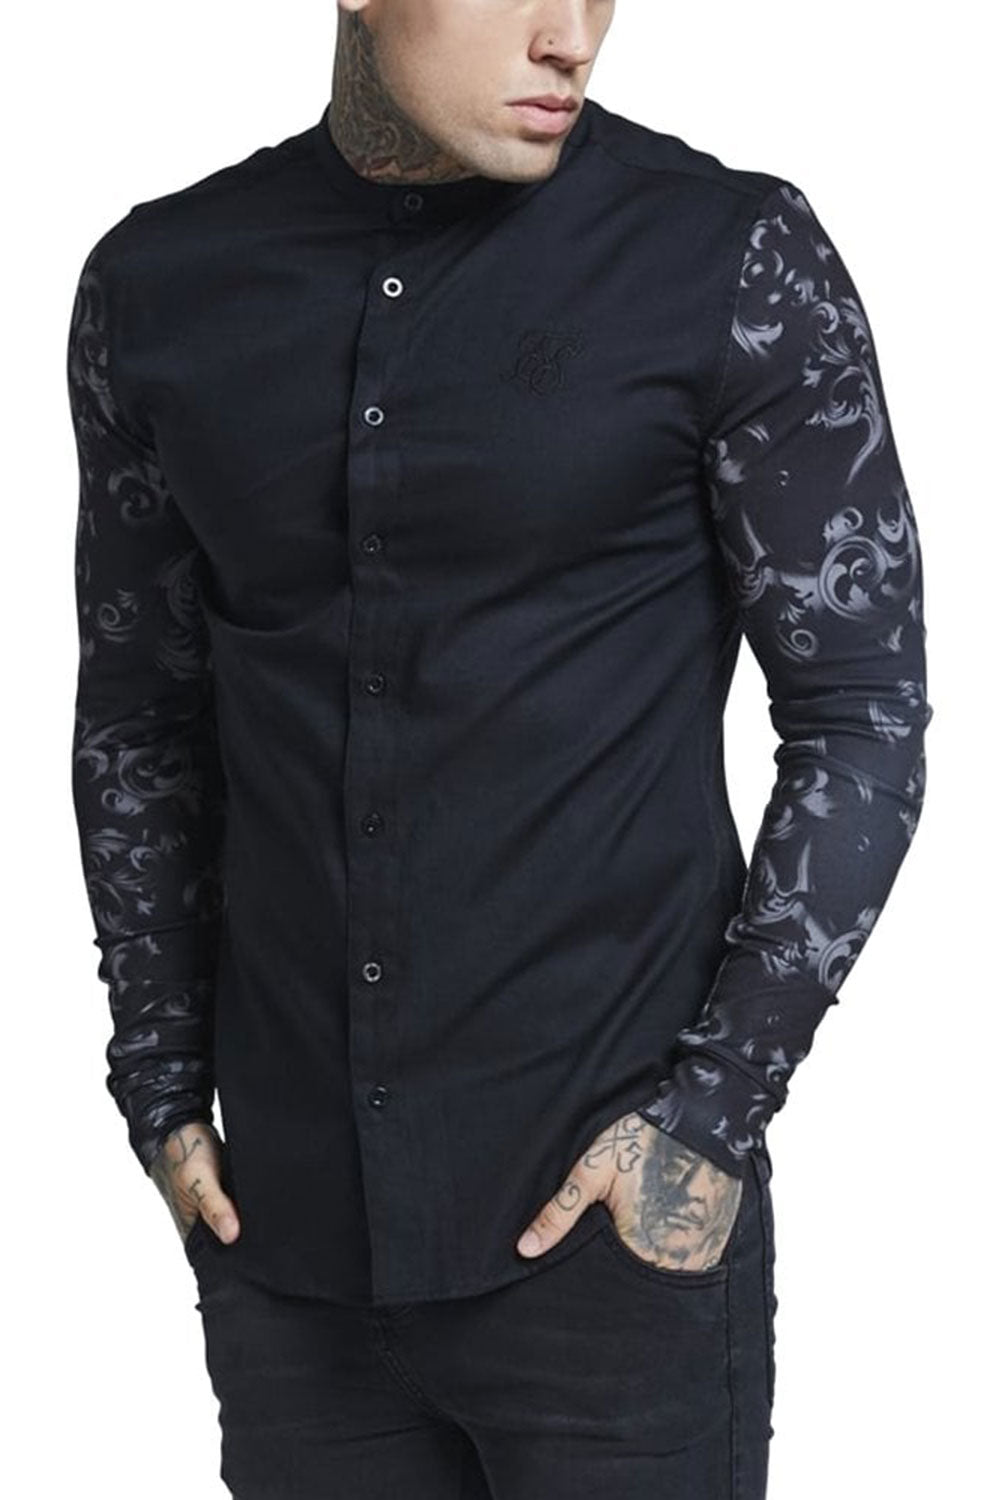 SikSilk Contrast Long Sleeve Grandad Collar - Black